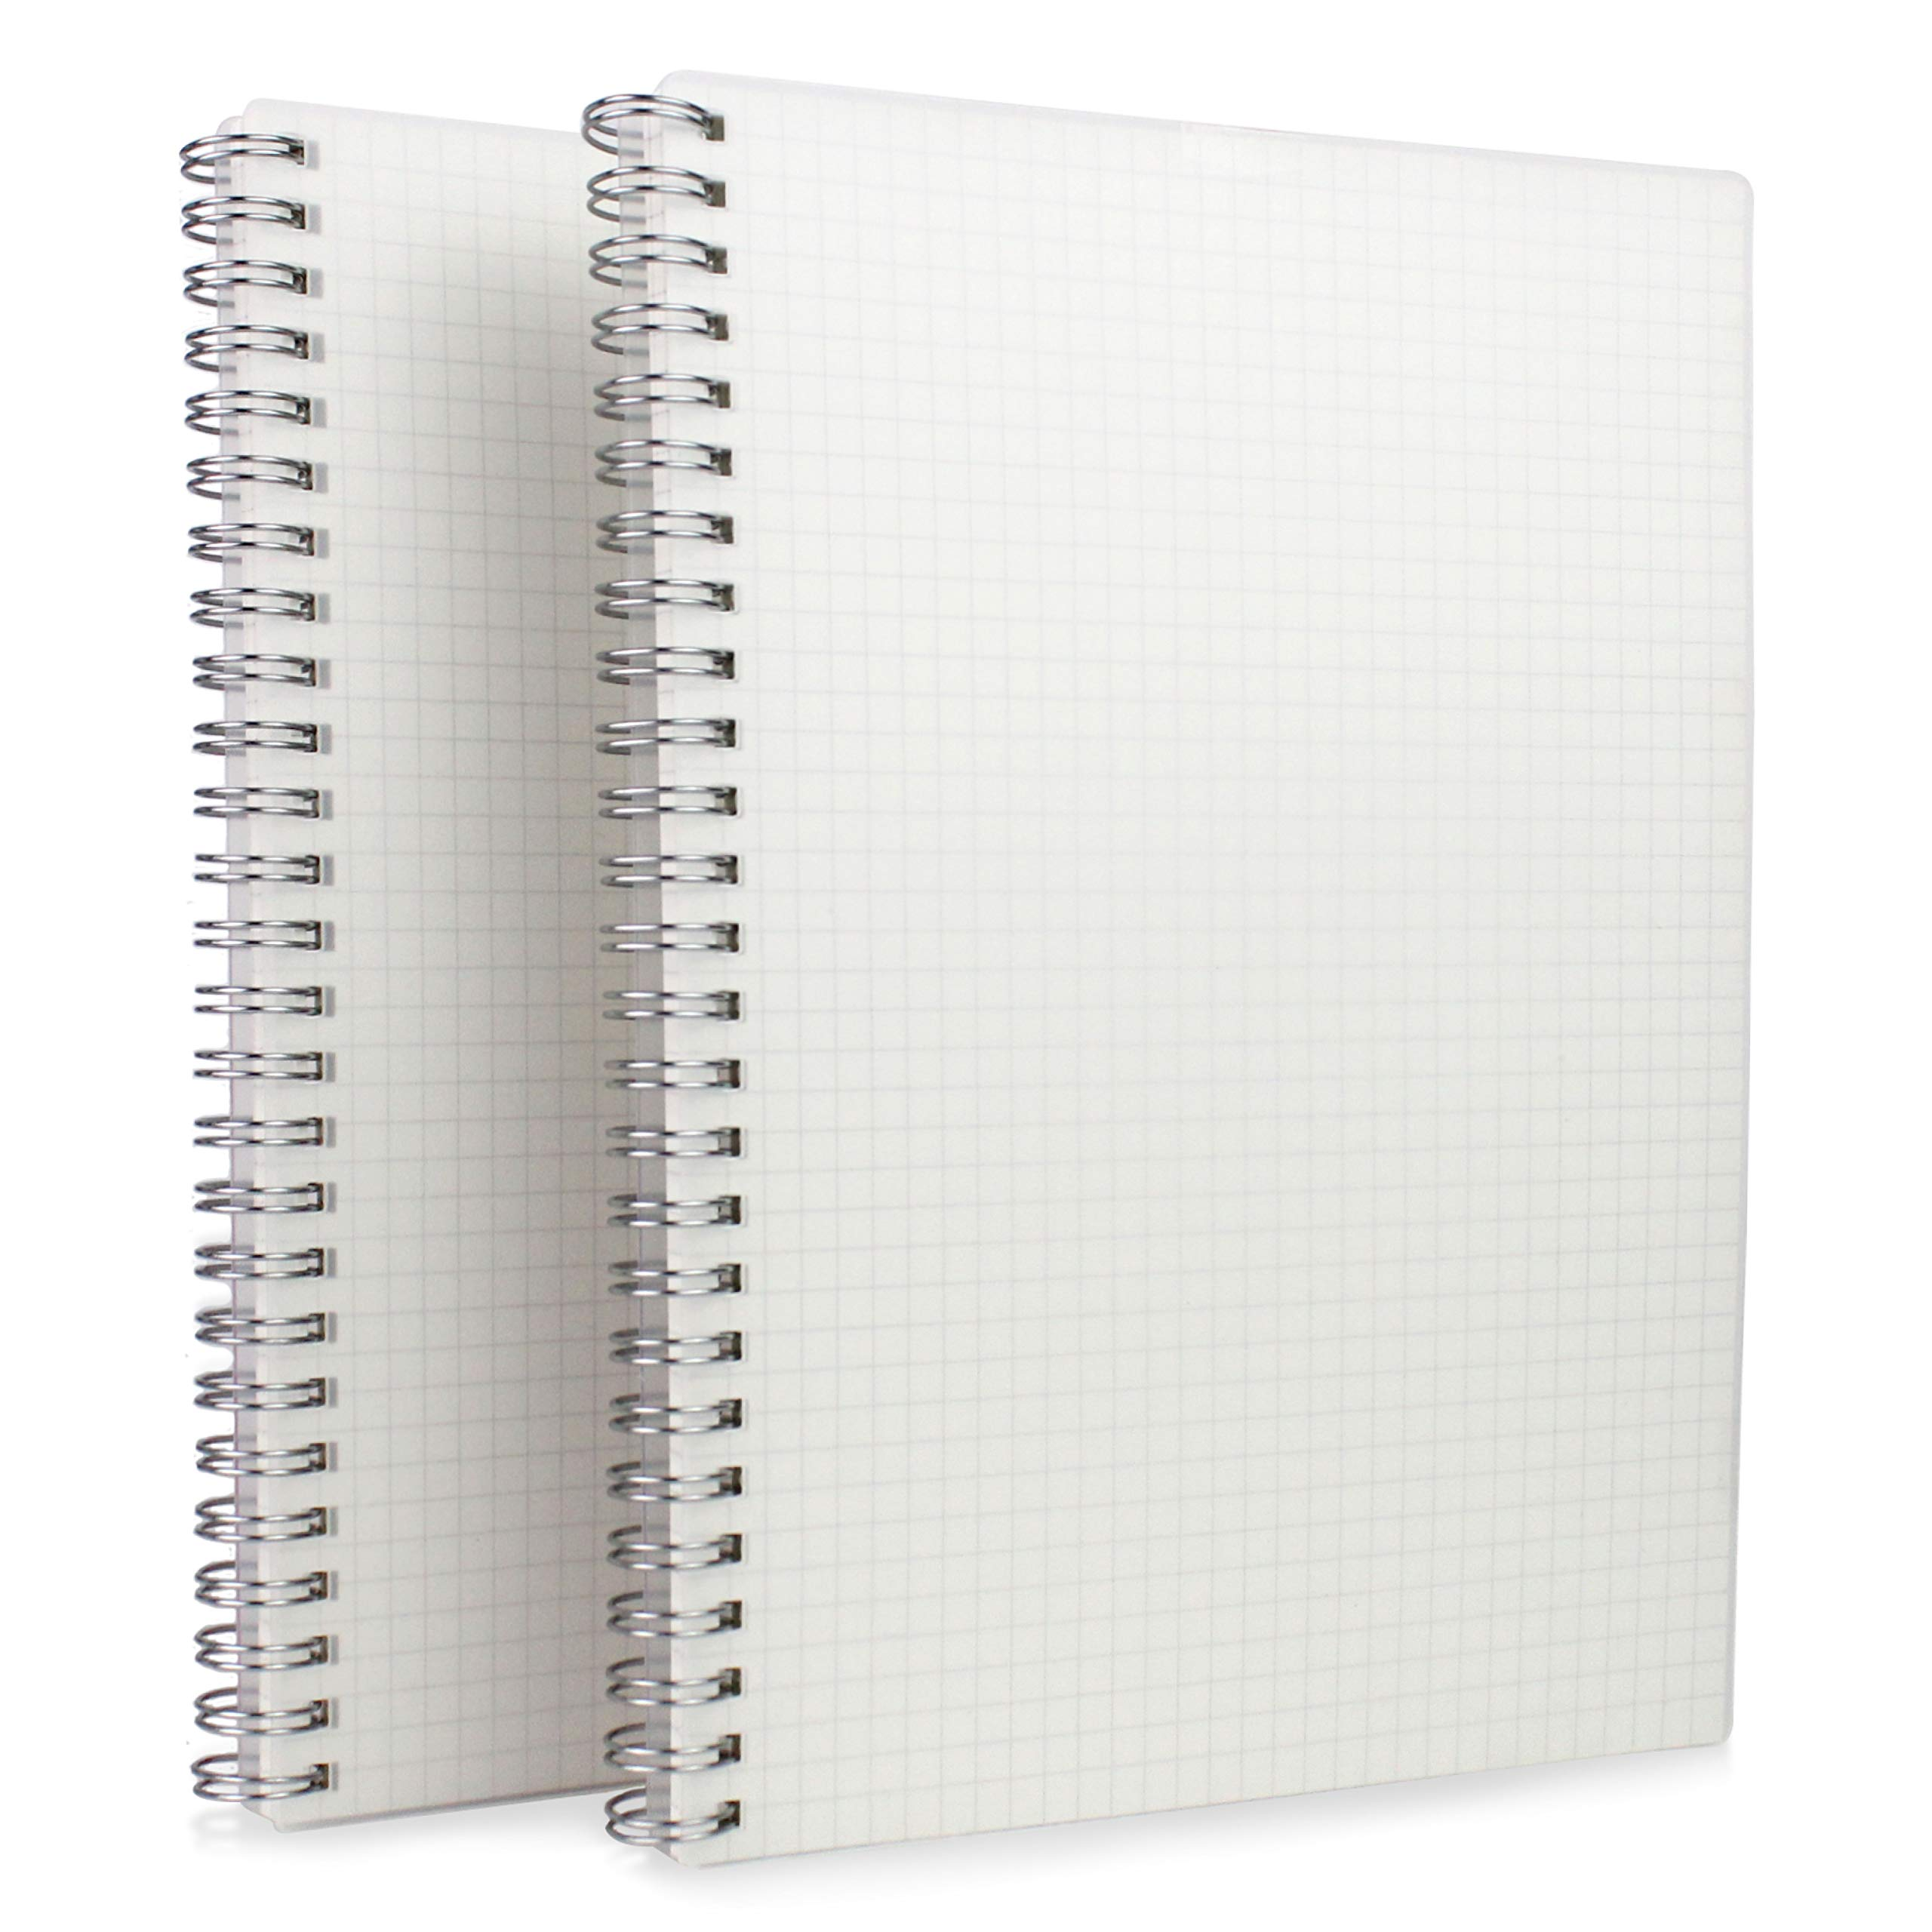 HULYTRAAT Graph Ruled Wirebound Spiral Notebook, 6.7 x 8.9 Inch, Sturdy See-Through Cover Journal, Premium 100gsm Ivory White Acid-Free Paper, 128 Squared/Grid Pages per Book (Pack of 2)